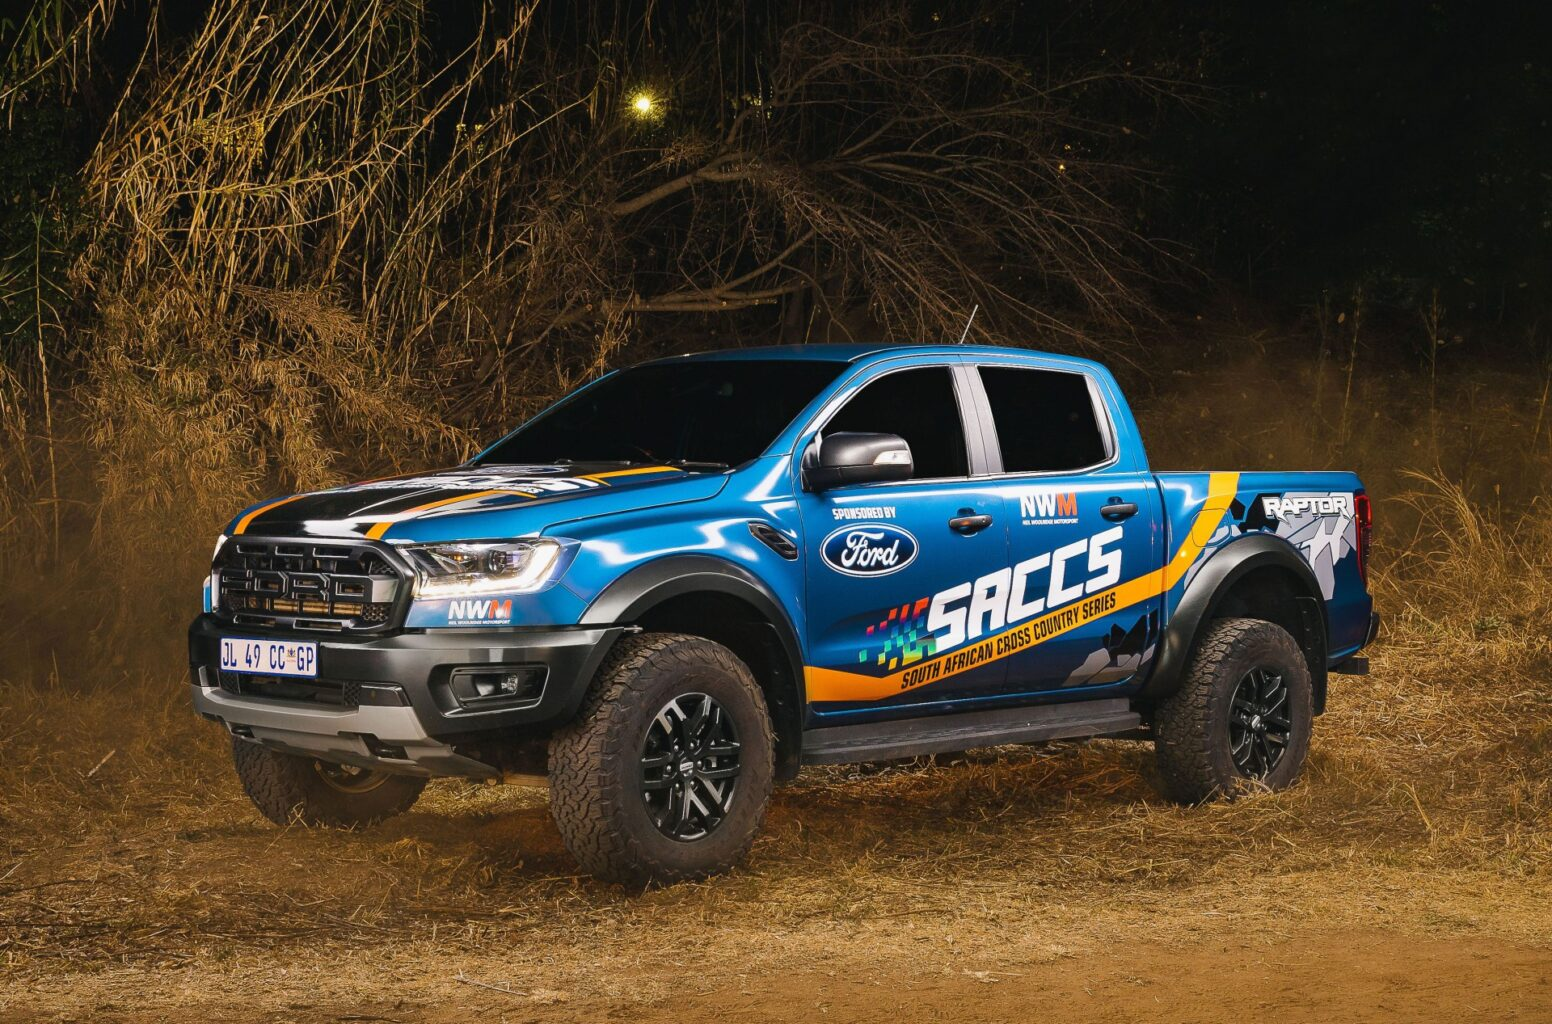 Ford Ranger the official route vehicle for SACCS